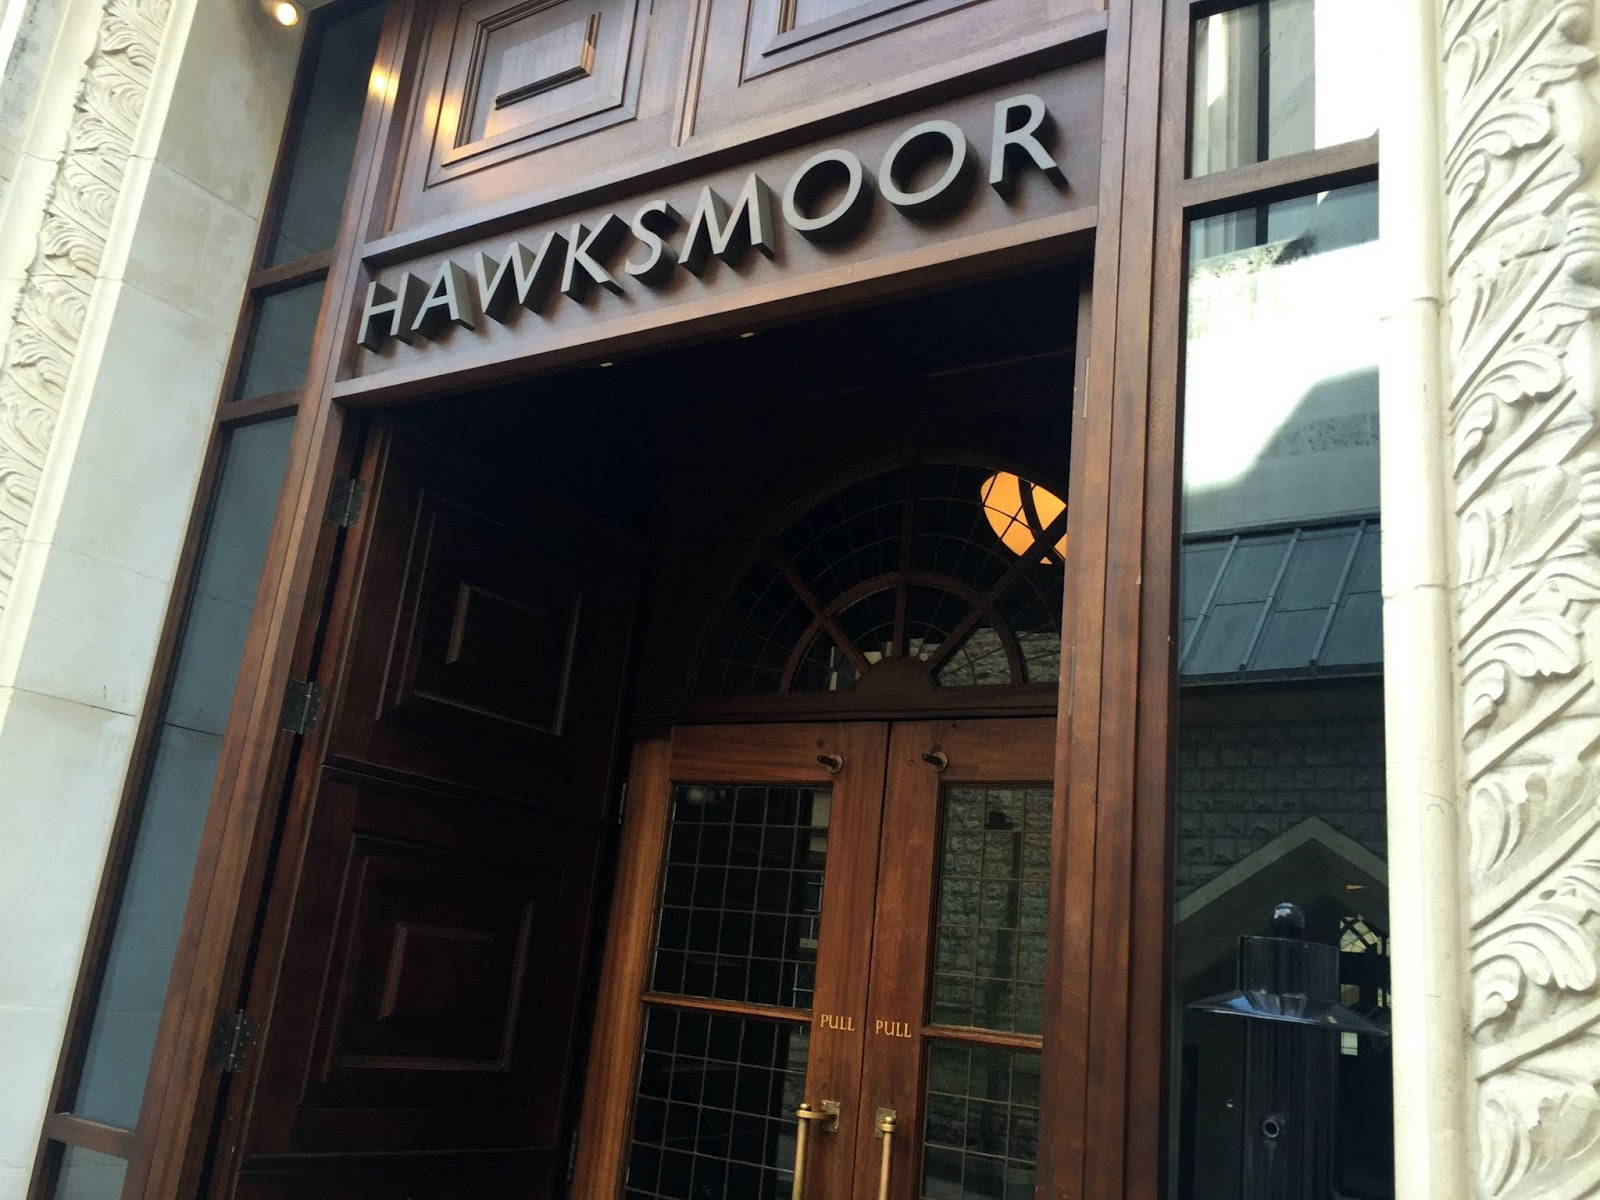 Entrance to Hawksmoor